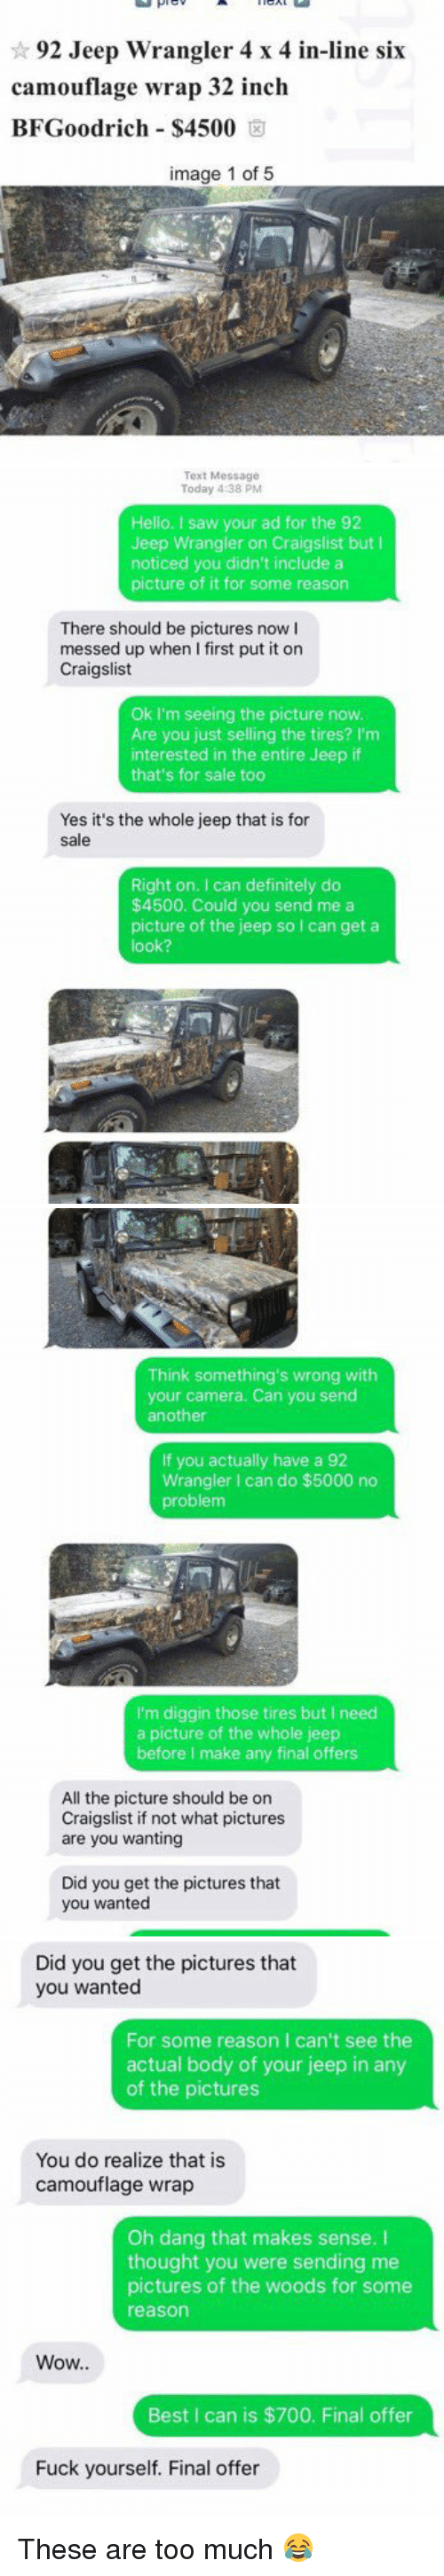 bfgoodrich: 92 Jeep Wrangler 4 x 4 in-line six  camouflage wrap 32 inch  BFGoodrich $4500  image 1 of 5   Text Message  Today 4:38 PM  Hello, I saw your ad for the 92  Jeep Wrangler on Craigslist but l  noticed you didn't include a  picture of it for some reason  There should be pictures now l  messed up when first put it on  Craigslist  Ok I'm seeing the picture now.  Are you just selling the tires? I'm  interested in the entire Jeep if  that's for sale too  Yes it's the whole jeep that is for  sale  Right on. can definitely do  $4500. Could you send me a  picture of the jeep so I can get a  look?   Think something's wrong with  your camera. Can you send  another  If you actually have a 92  Wrangler I can do $5000 no  problem  I'm diggin those tires but I need  a picture of the whole jeep  before make any final offers  All the picture should be on  Craigslist if not what pictures  are you wanting  Did you get the pictures that  you wanted   Did you get the pictures that  you wanted  For some reason I can't see the  actual body of your jeep in any  of the pictures  You do realize that is  camouflage wrap  Oh dang that makes sense.  thought you were sending me  pictures of the woods for some  reason  Wow..  Best I can is $700. Final offer  Fuck yourself. Final offer These are too much 😂